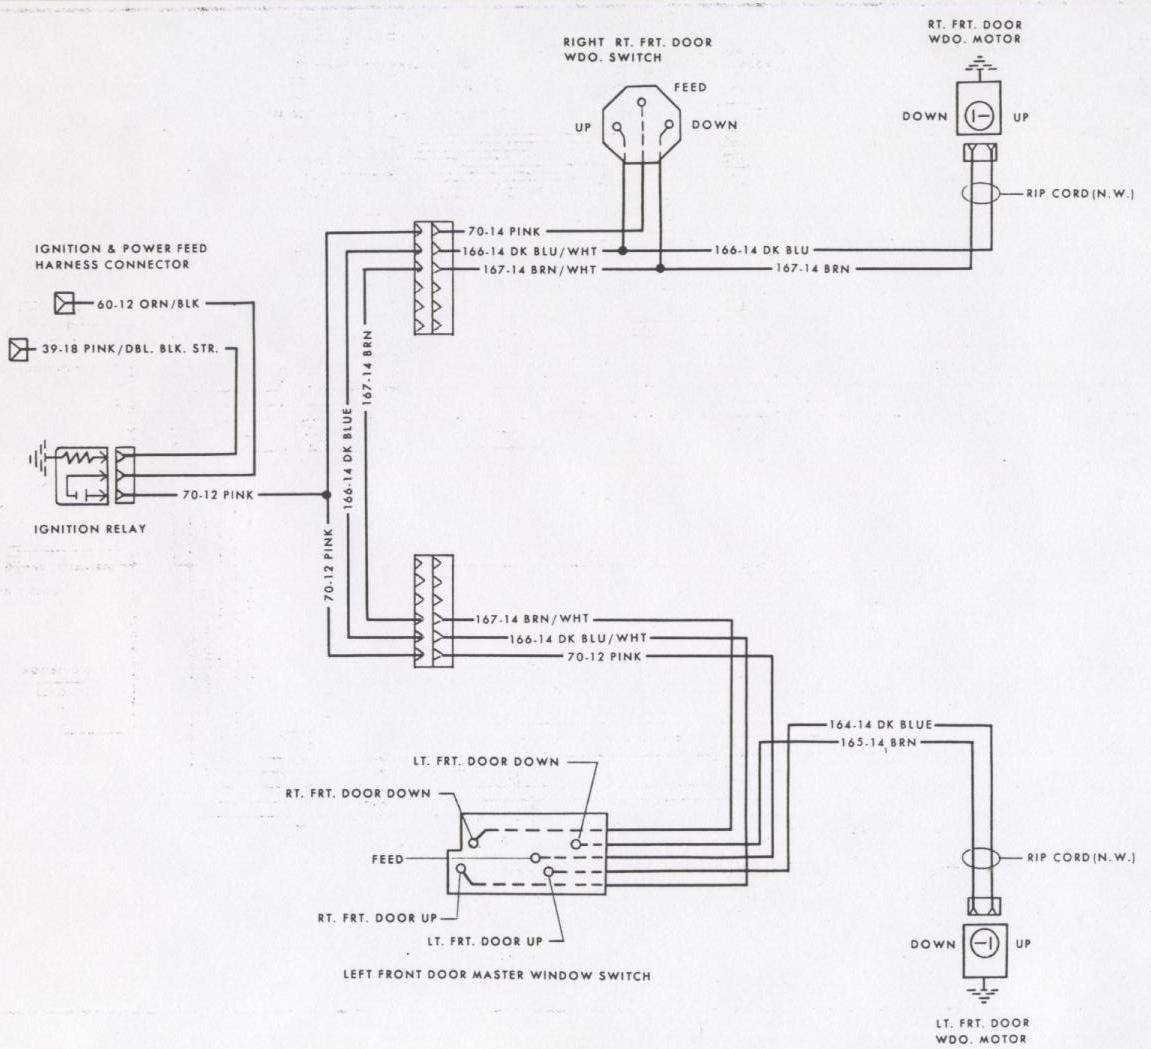 Camaro Wiring Diagrams Electrical Information Troubleshooting 71 Nova Diagram Front Power Locks 1978